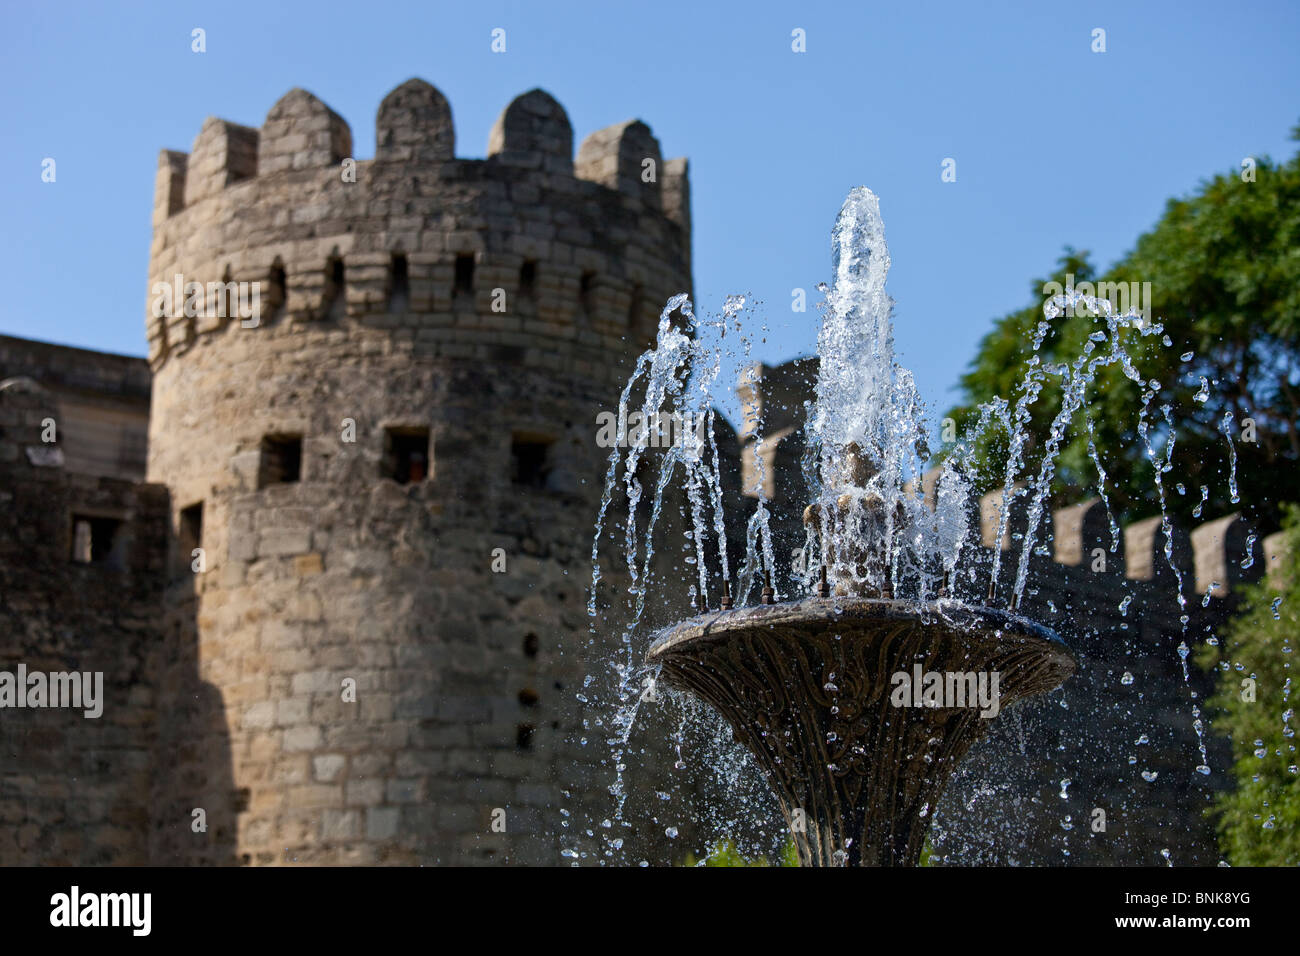 Fountain in front of the old city walls, Baku, Azerbaijan - Stock Image